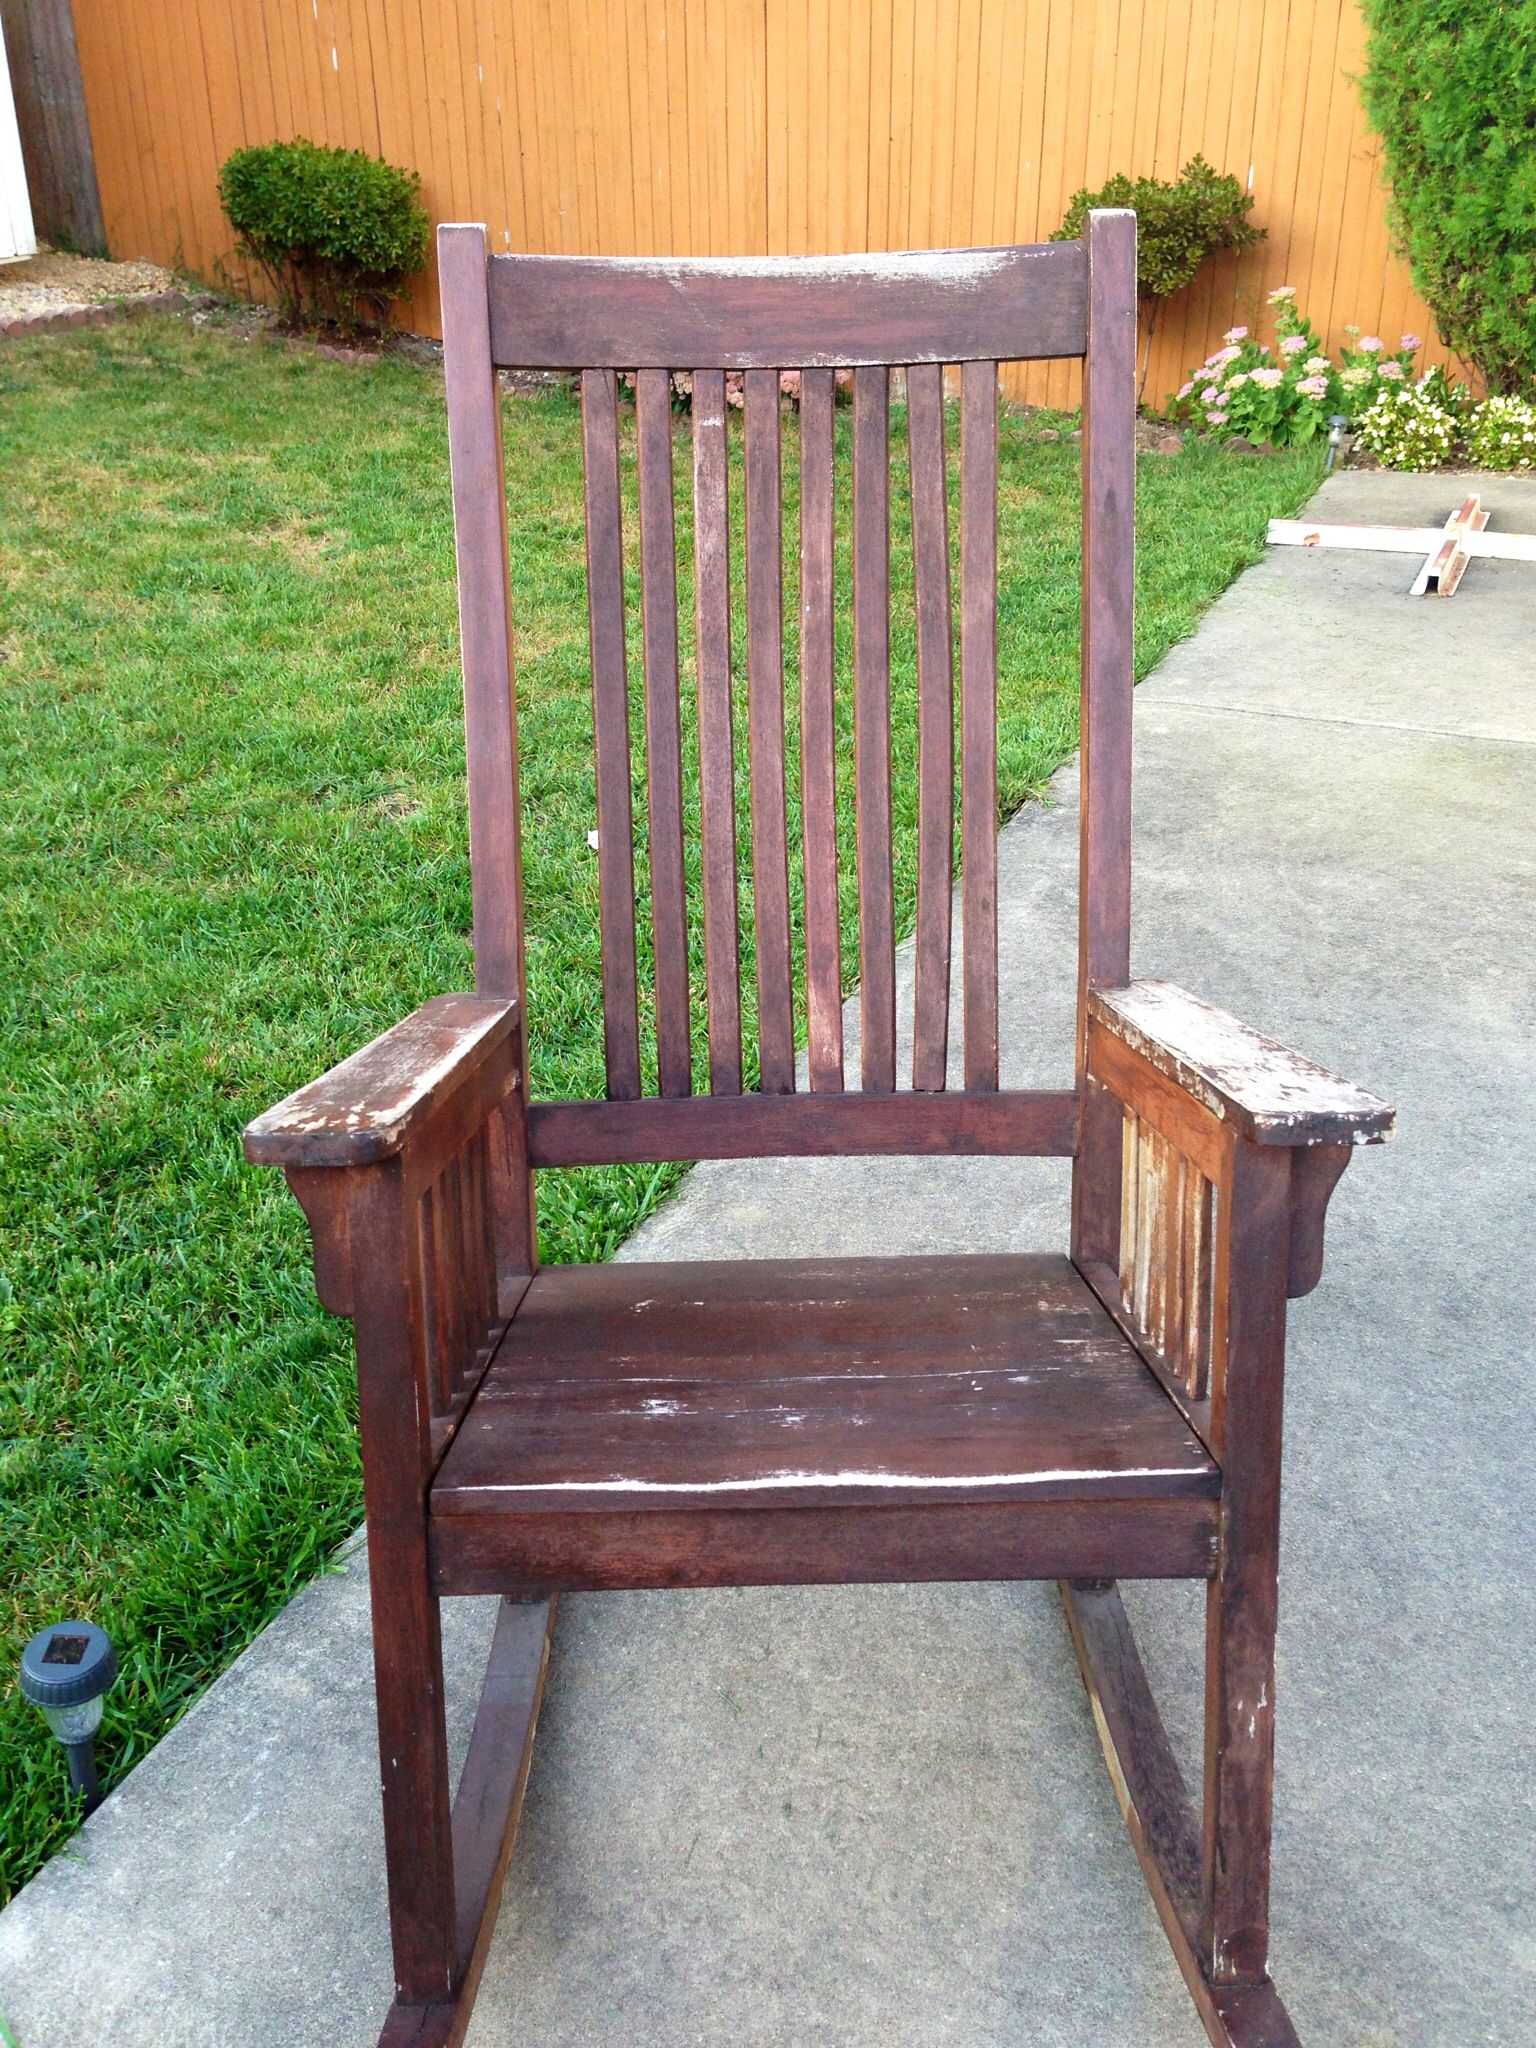 Dyi This Is An Old Rocking Chair Outdoor And